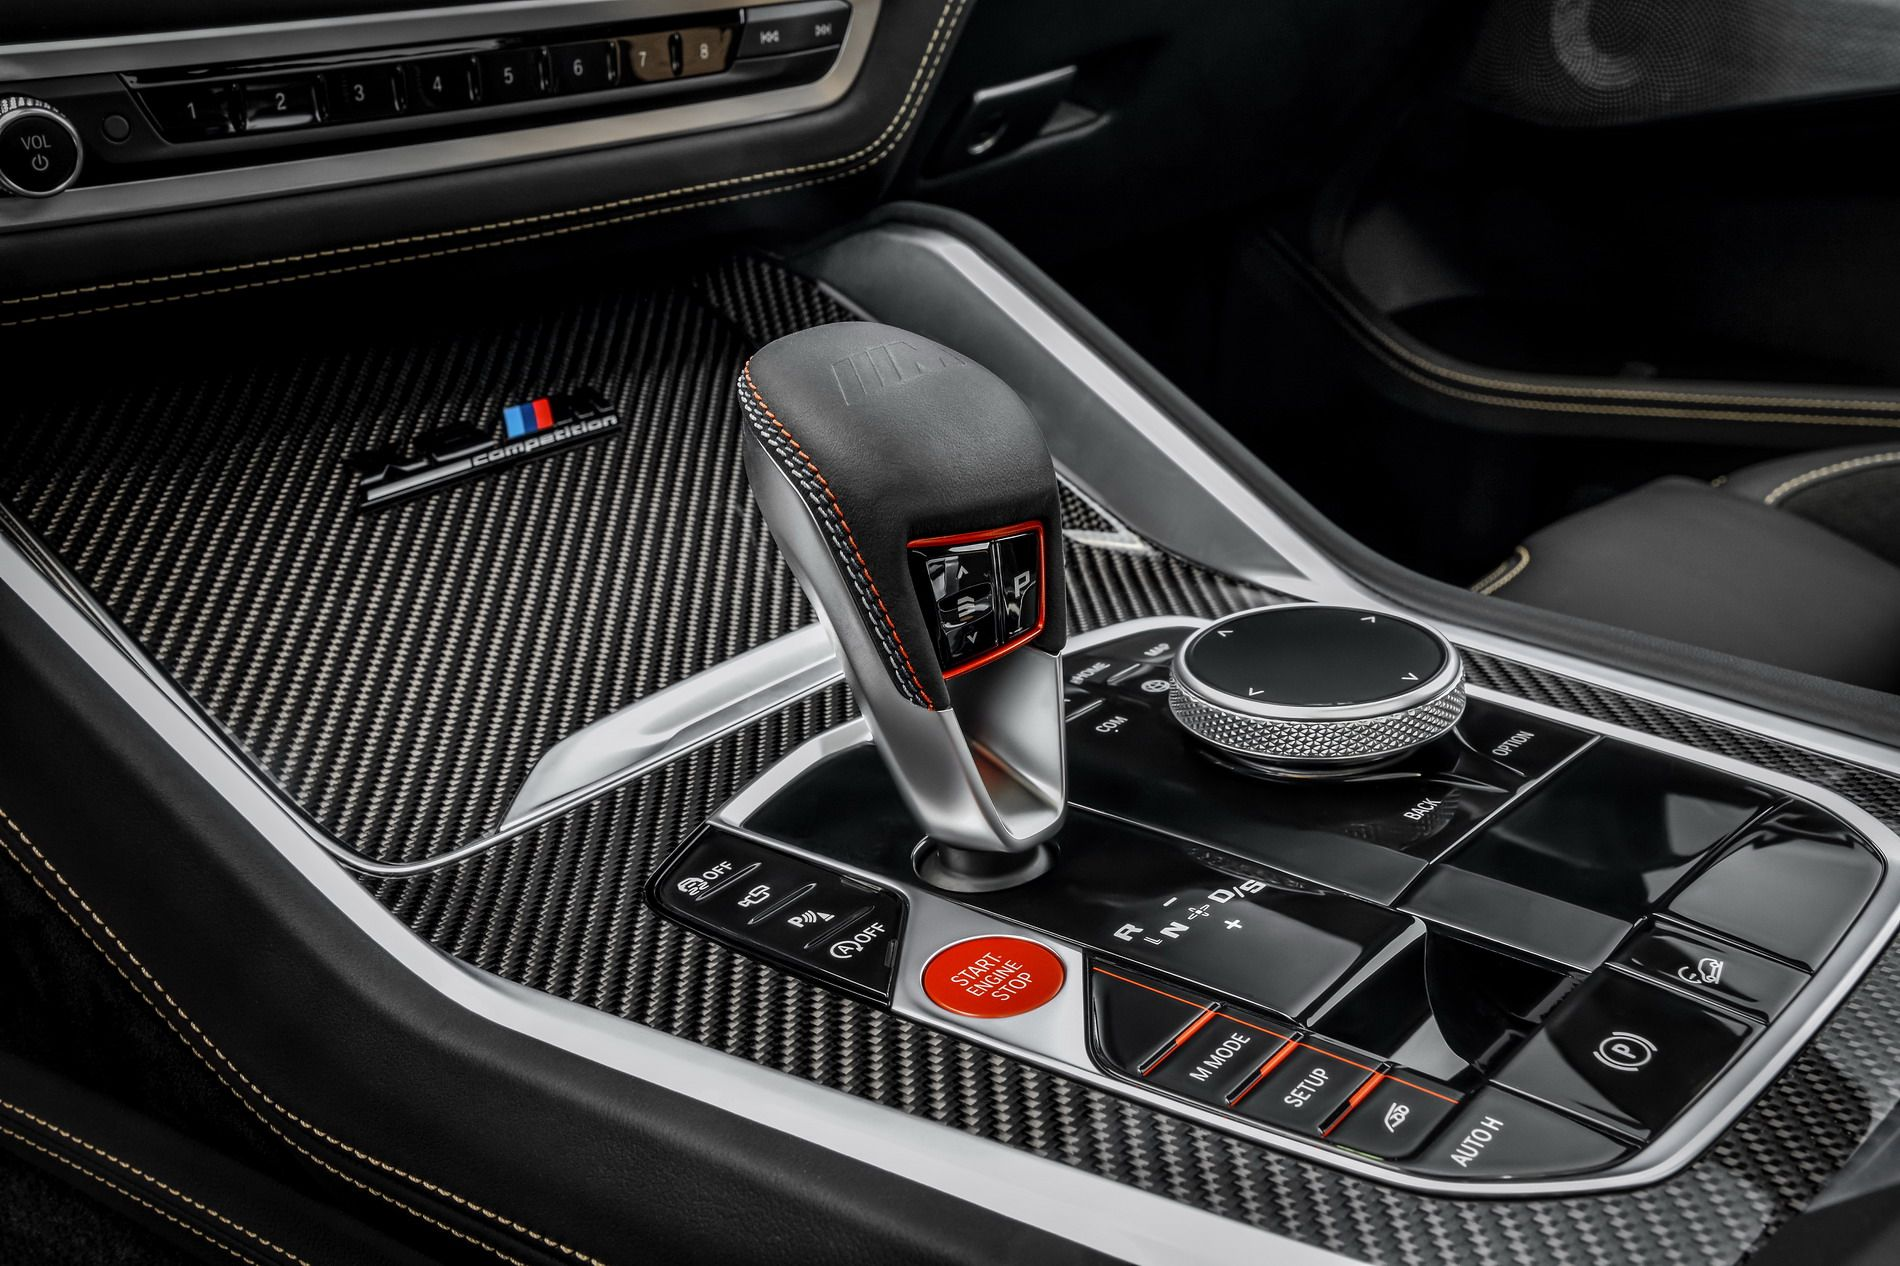 The Most Eye Catching Electronic Gear Selectors Bmw Has Designed